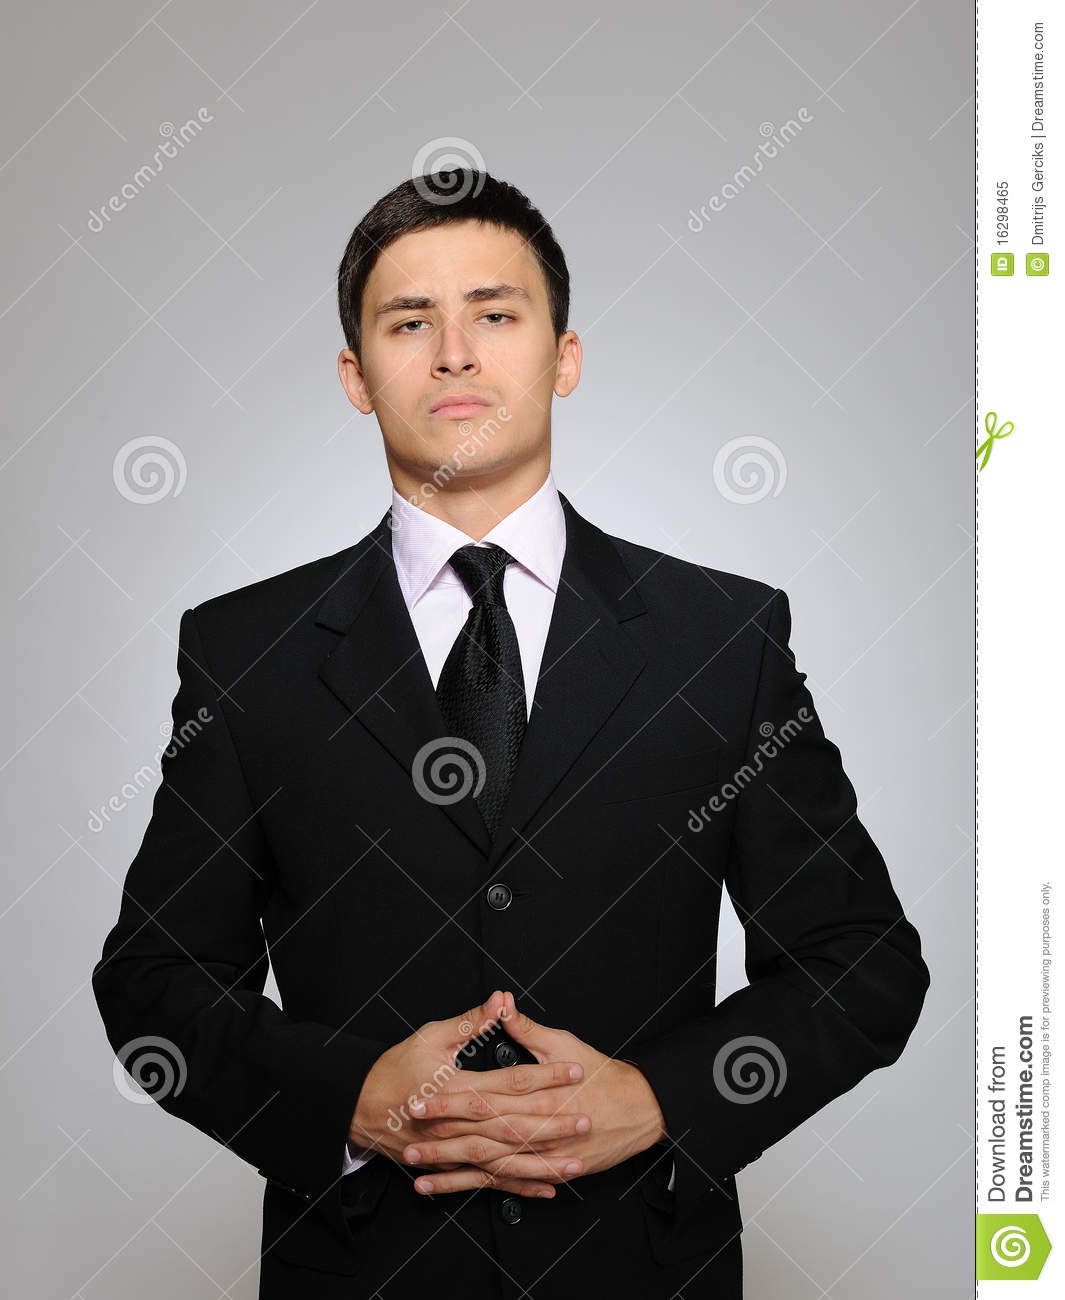 young-serious-business-man-black-suit-tie-16298465.jpg